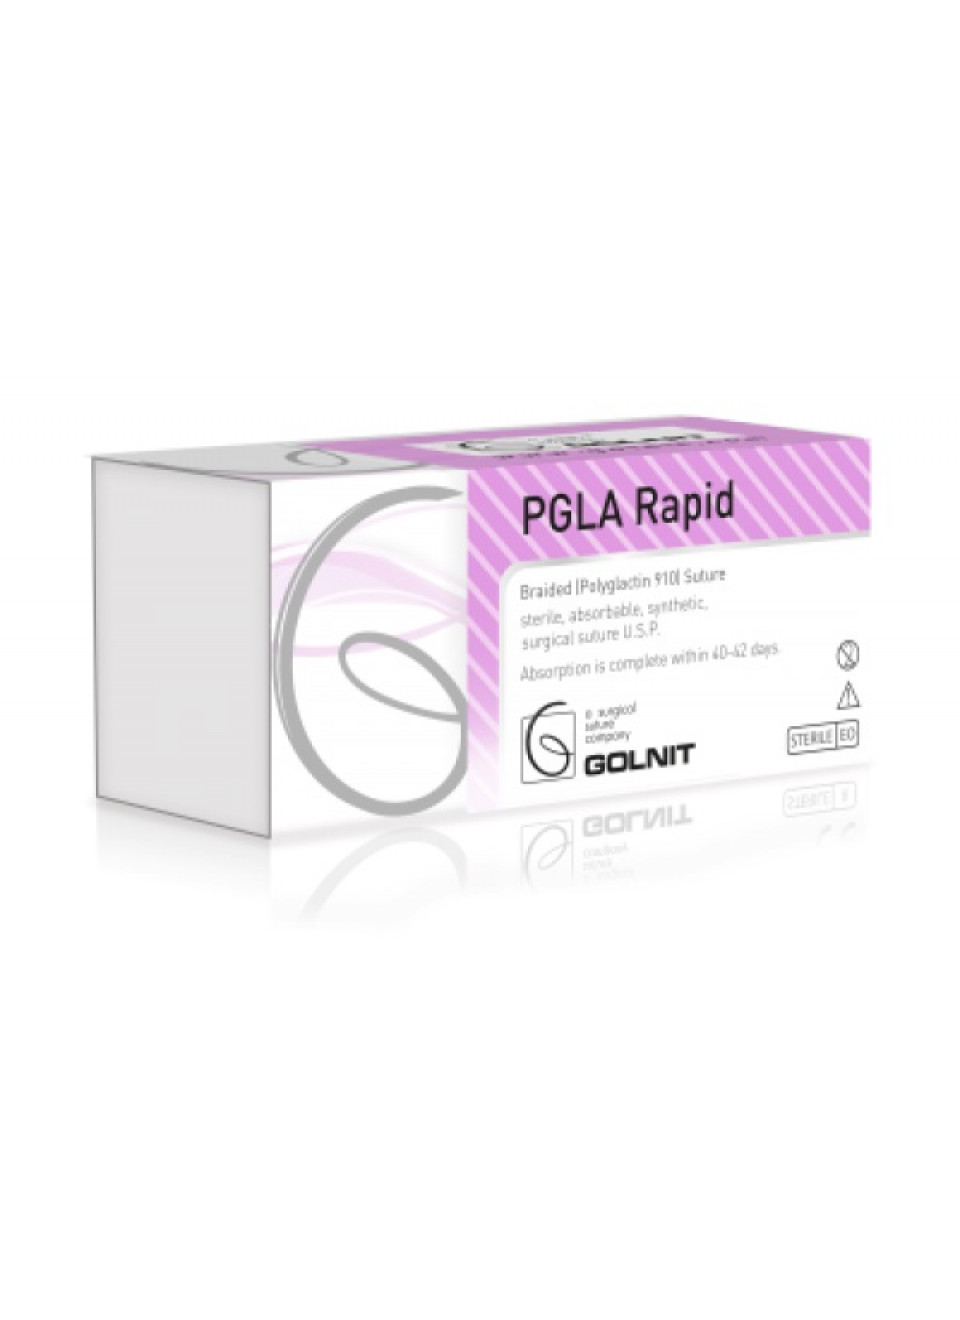 Golnit PGLA Rapid absorbable suture